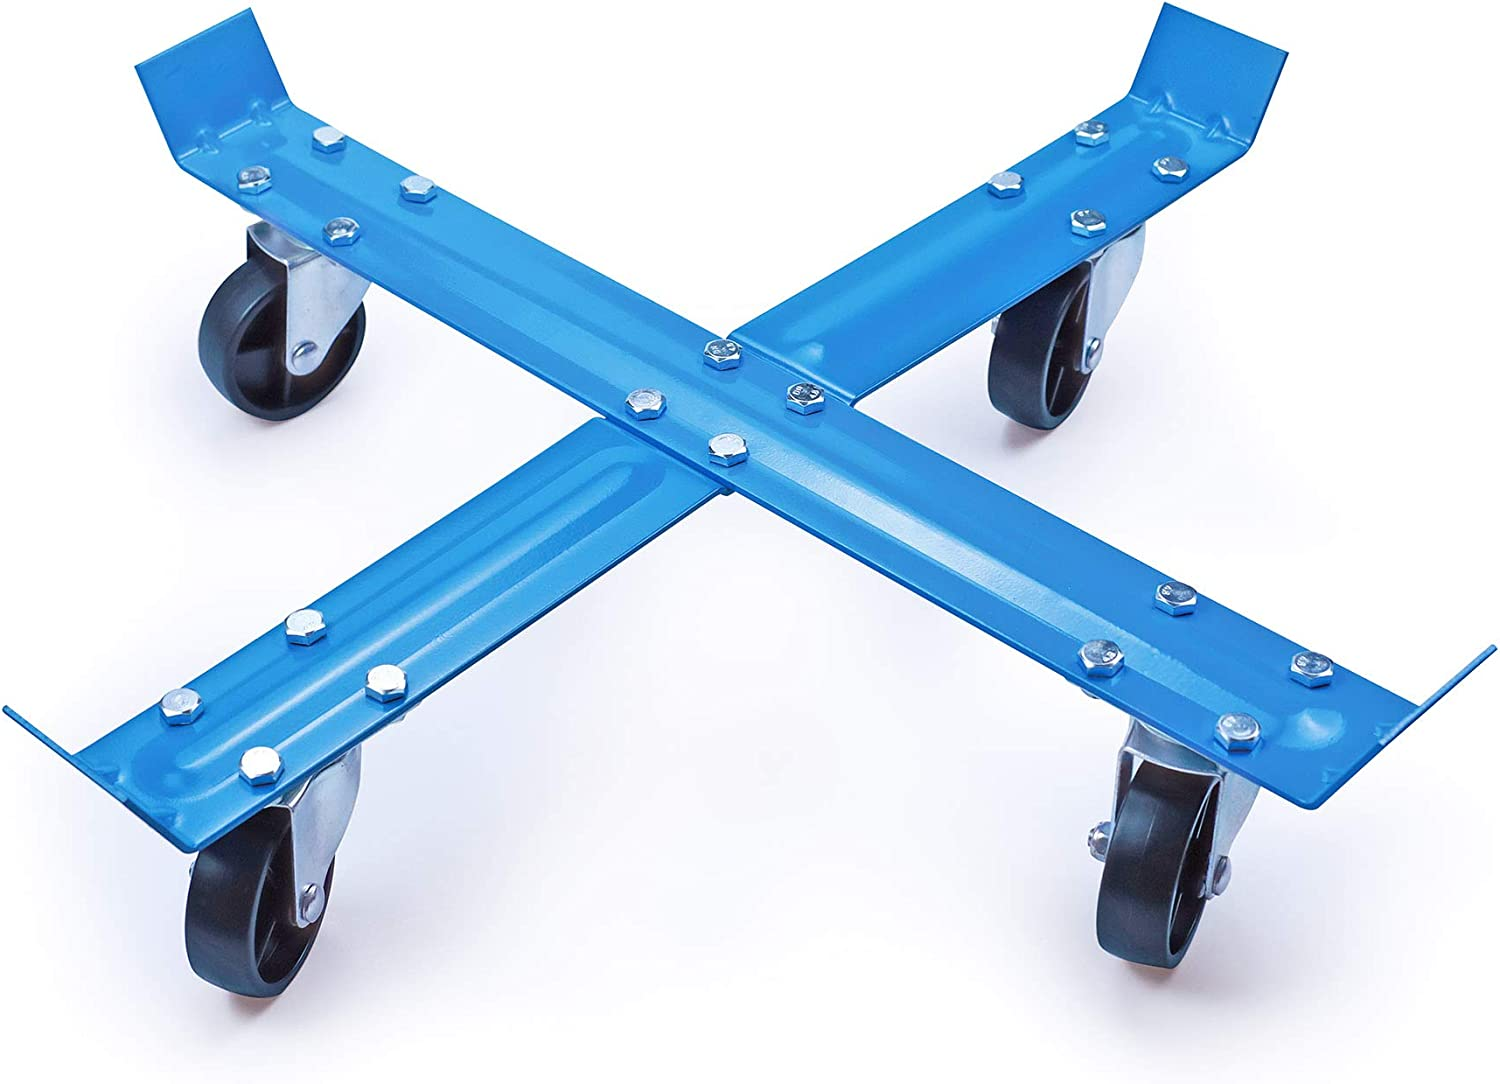 LIBRA 55 Gallon Foldable Drum Dolly Casters Wheel Swivel D with Memphis New life Mall